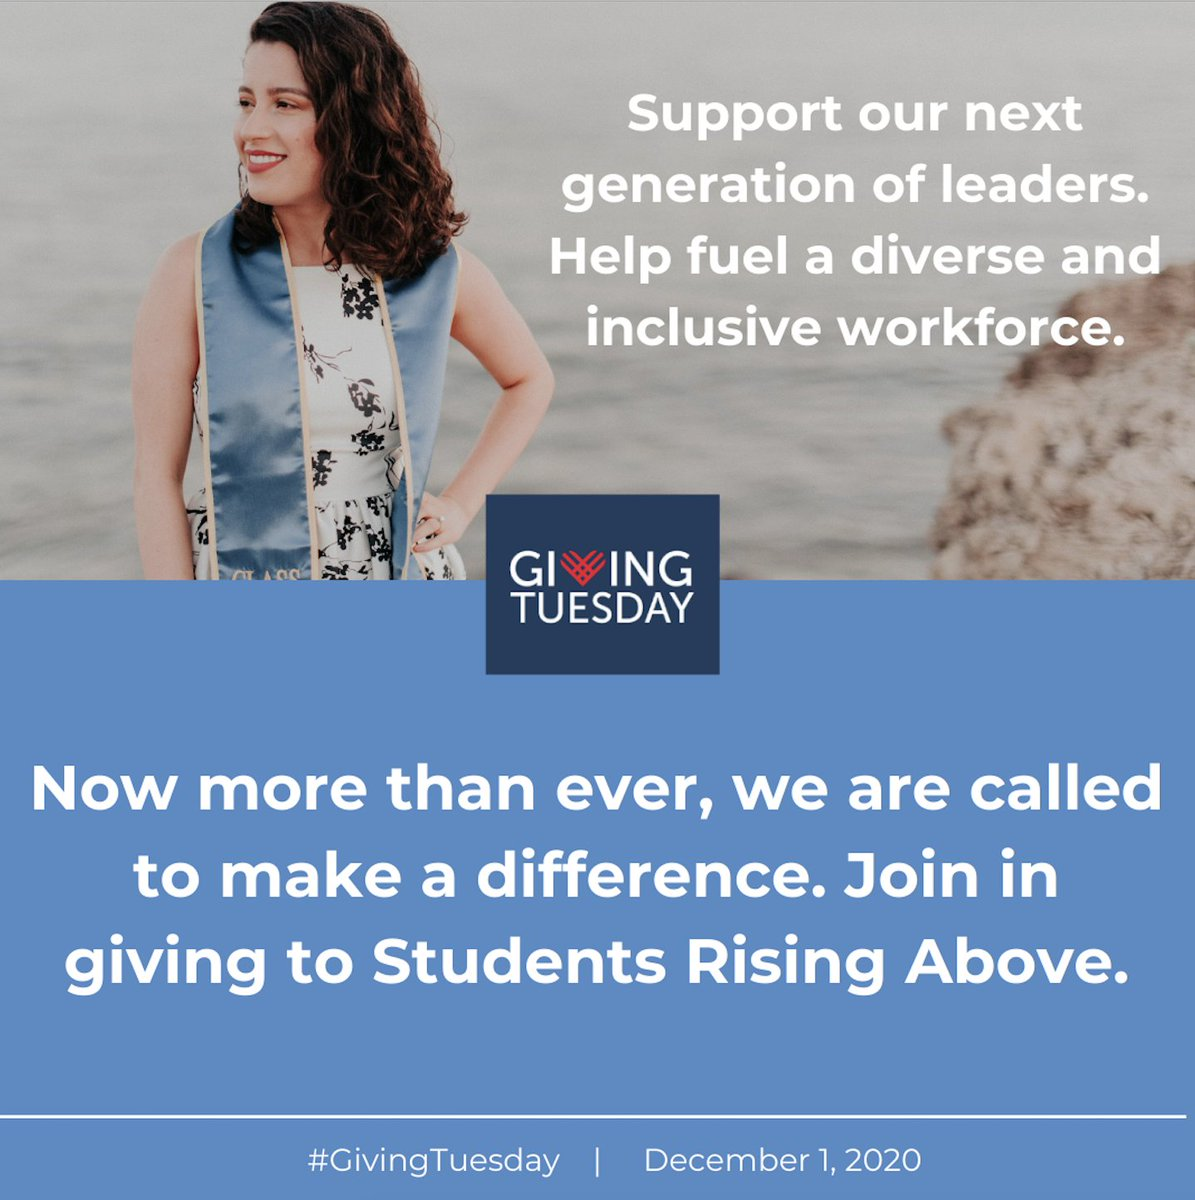 #GivingTuesday2020 is only one week away, coming up on December 1st!    If you are able, we hope you will join us and spread the spirit of giving! Tell others why you support Students Rising Above, @SRAprogram   Please consider contributing here: https://t.co/dBLblVcLK7 https://t.co/A2KISyBM91